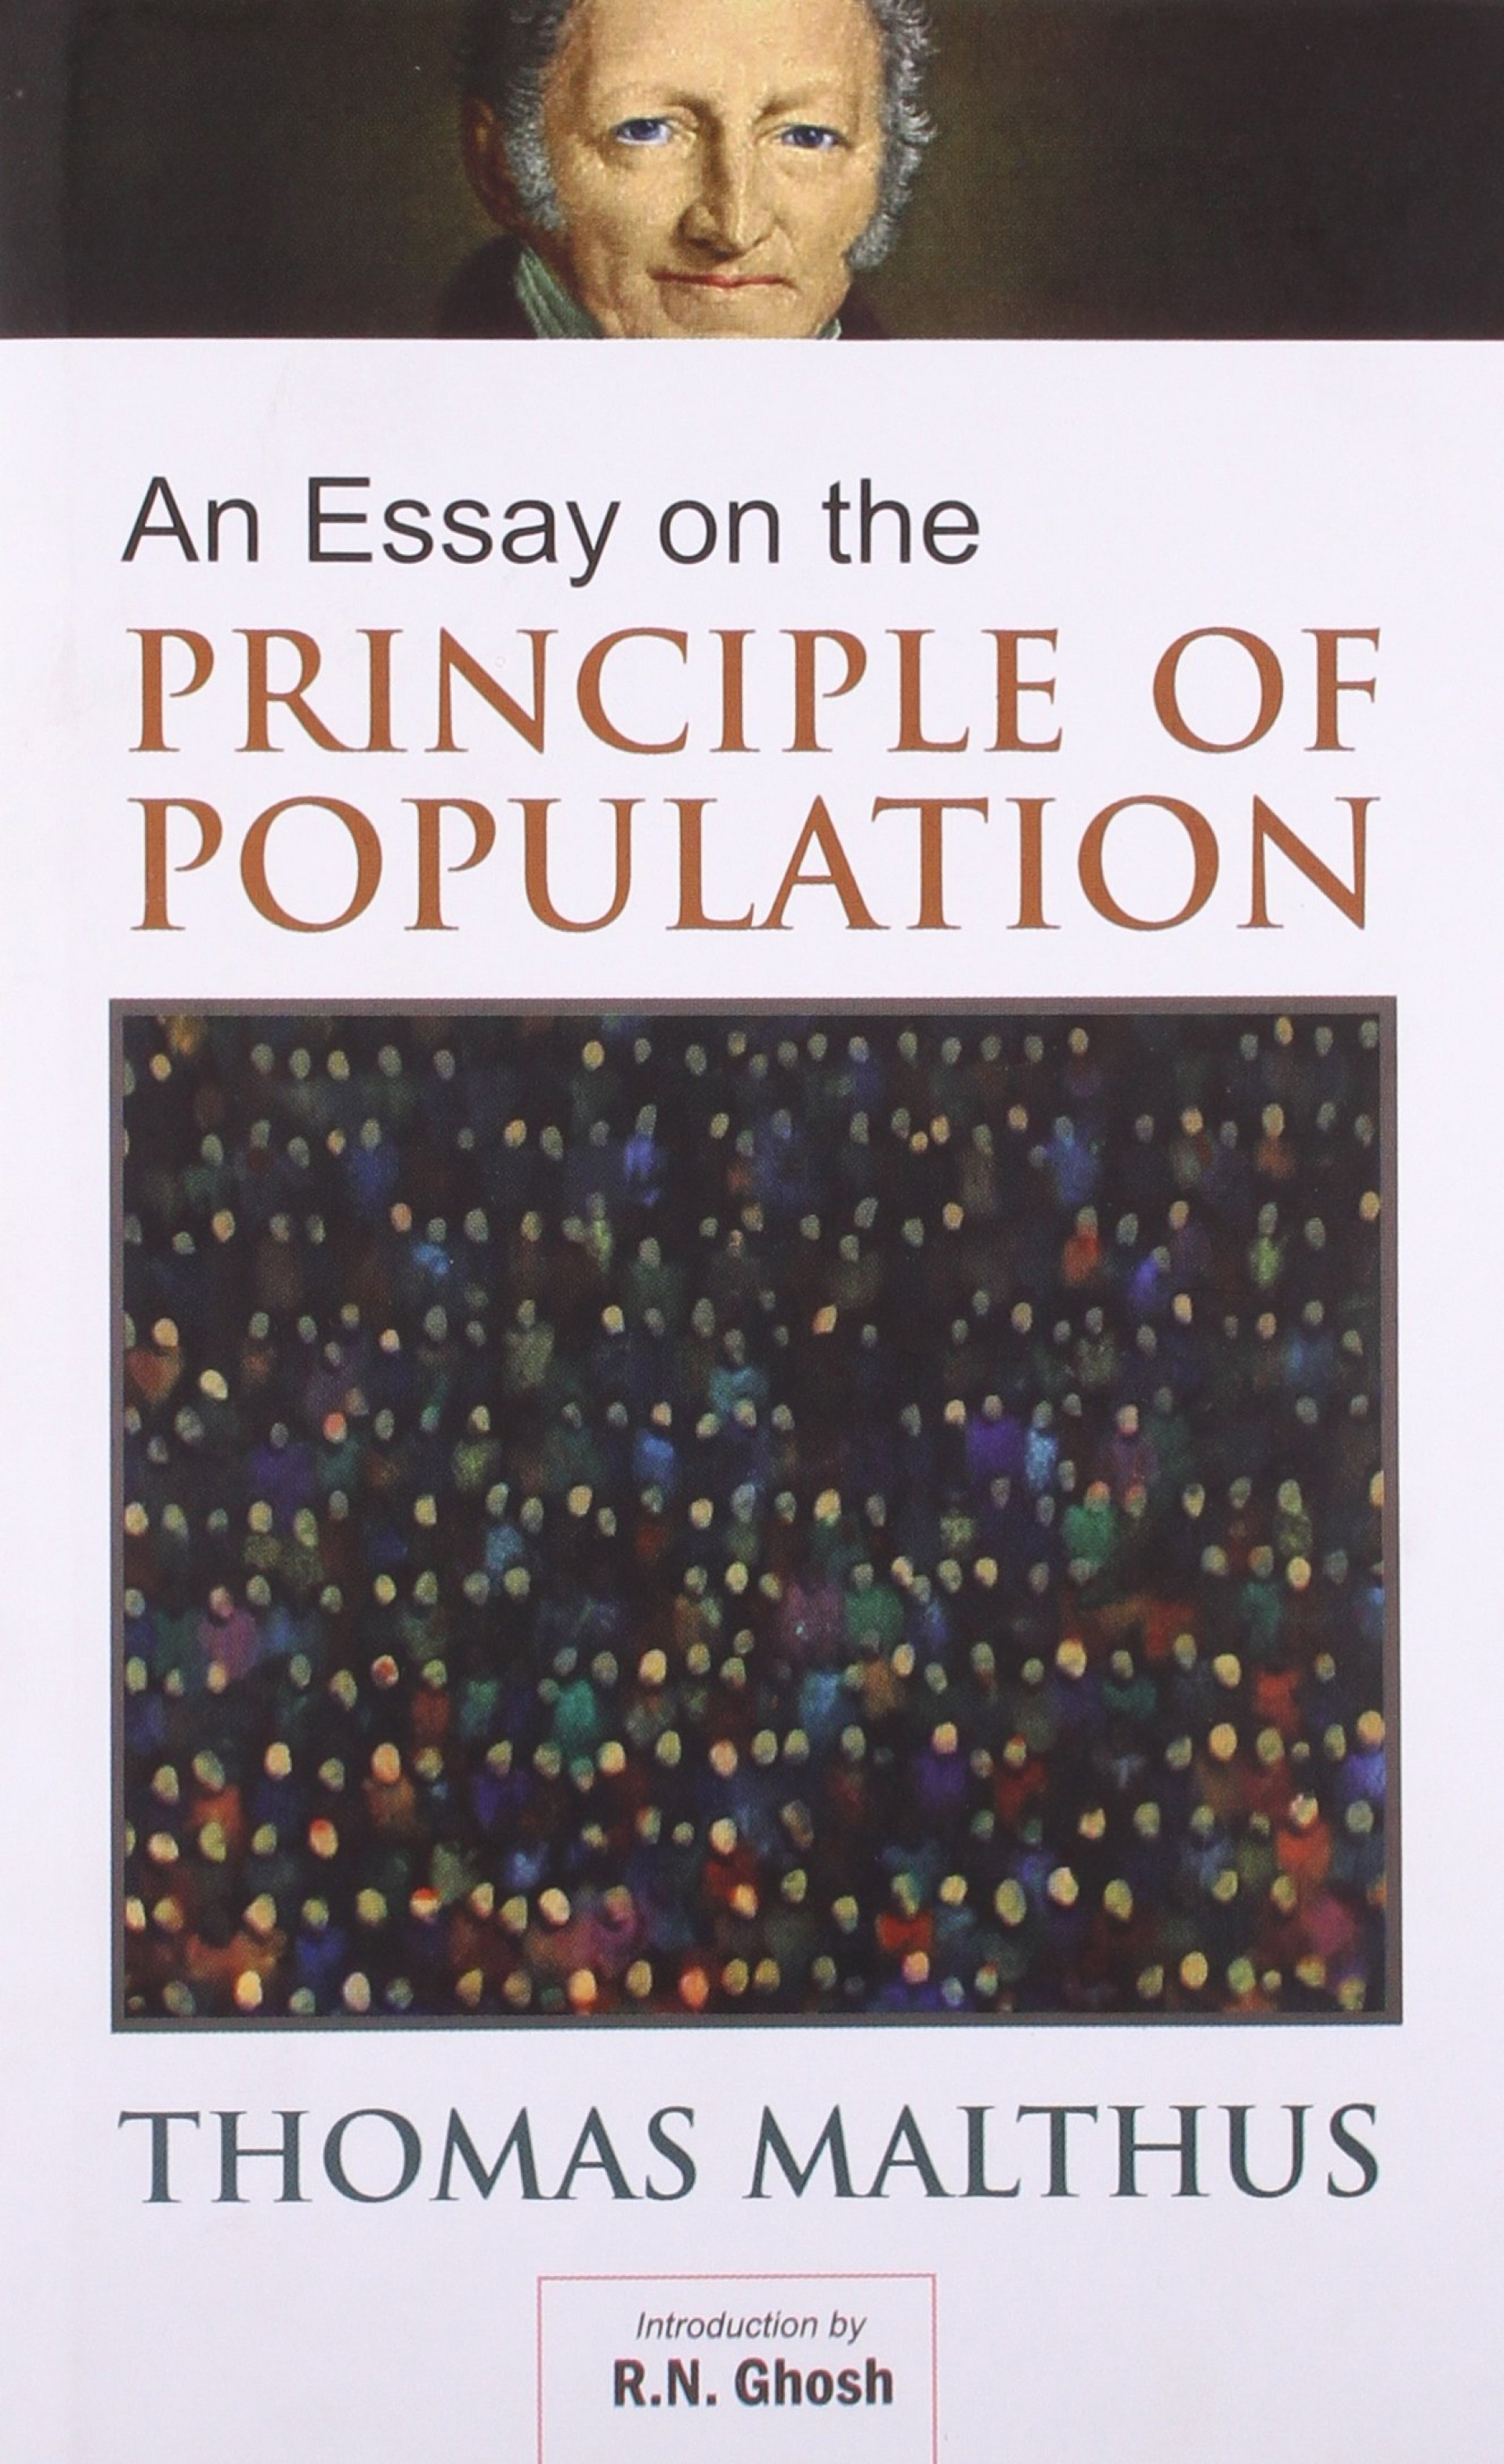 006 Essay On The Principle Of Population 8162bfm1ycfl Singular Thomas Malthus Sparknotes Advocated Ap Euro 1920